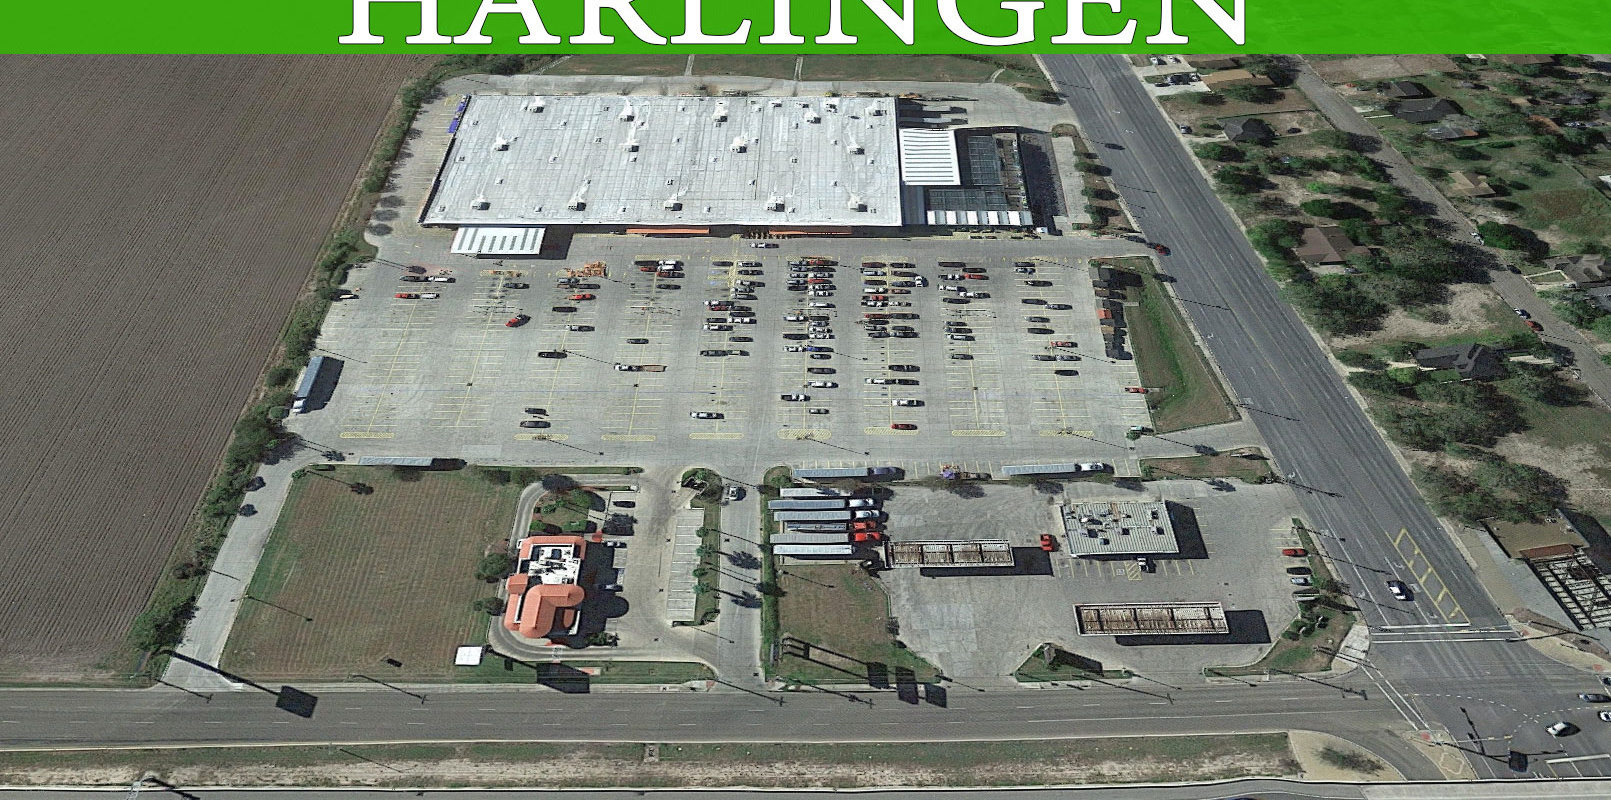 Harlingen Center